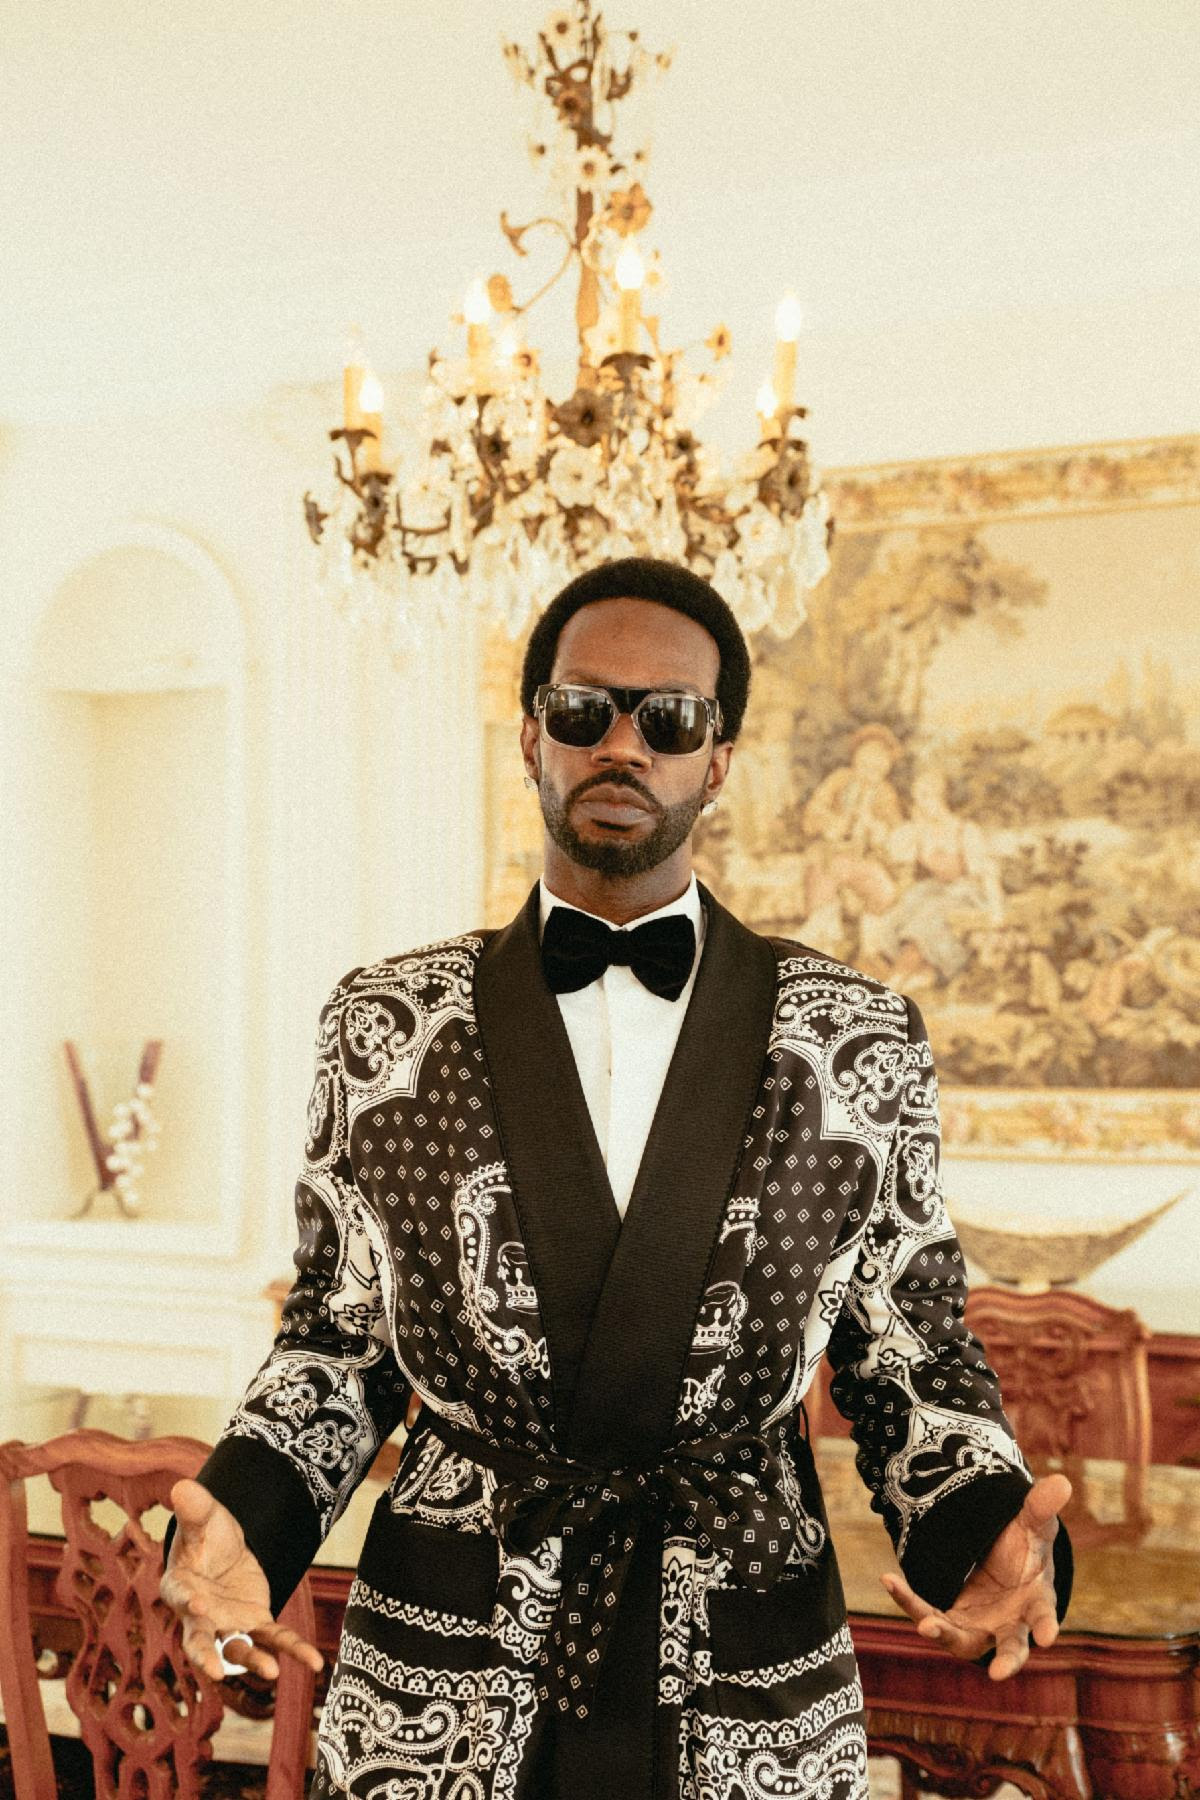 Juicy J Announces New Album Featuring Megan Thee Stallion, Lil Baby, A$AP Rocky, 2 Chainz and Forms New Cannabis Brand Asterisk*